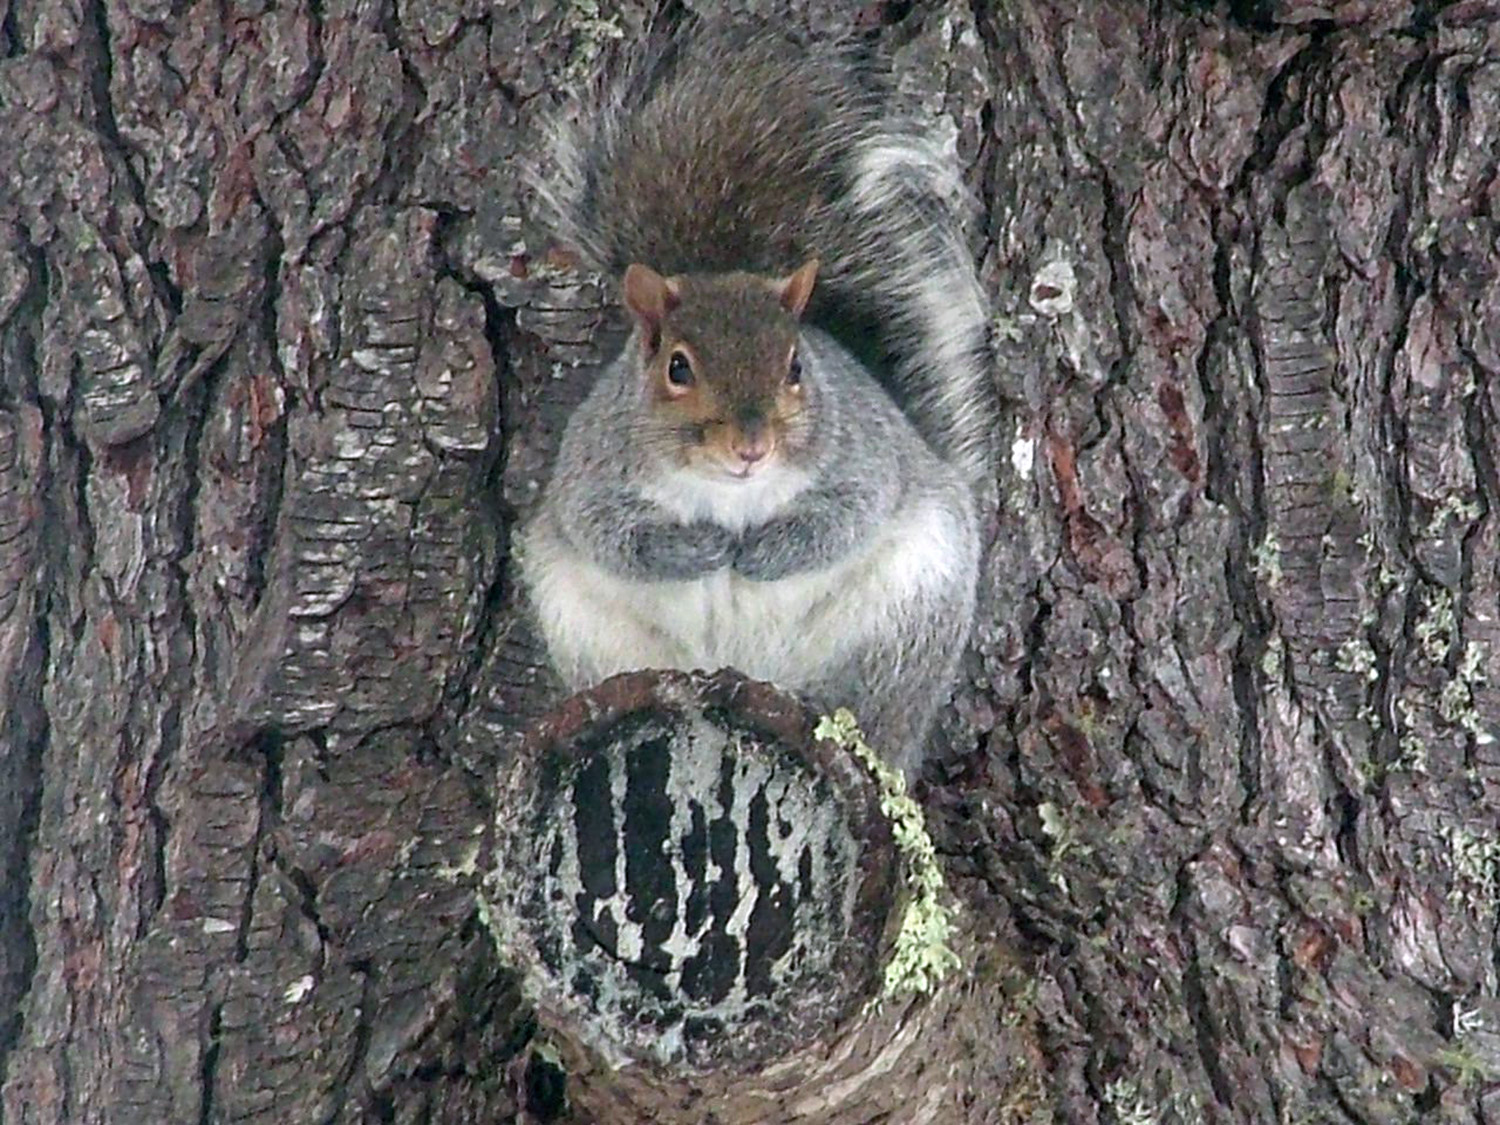 Judging from its girth, this squirrel must have an ample supply of nuts in that tree near Heidi Reed's home in Waterboro.